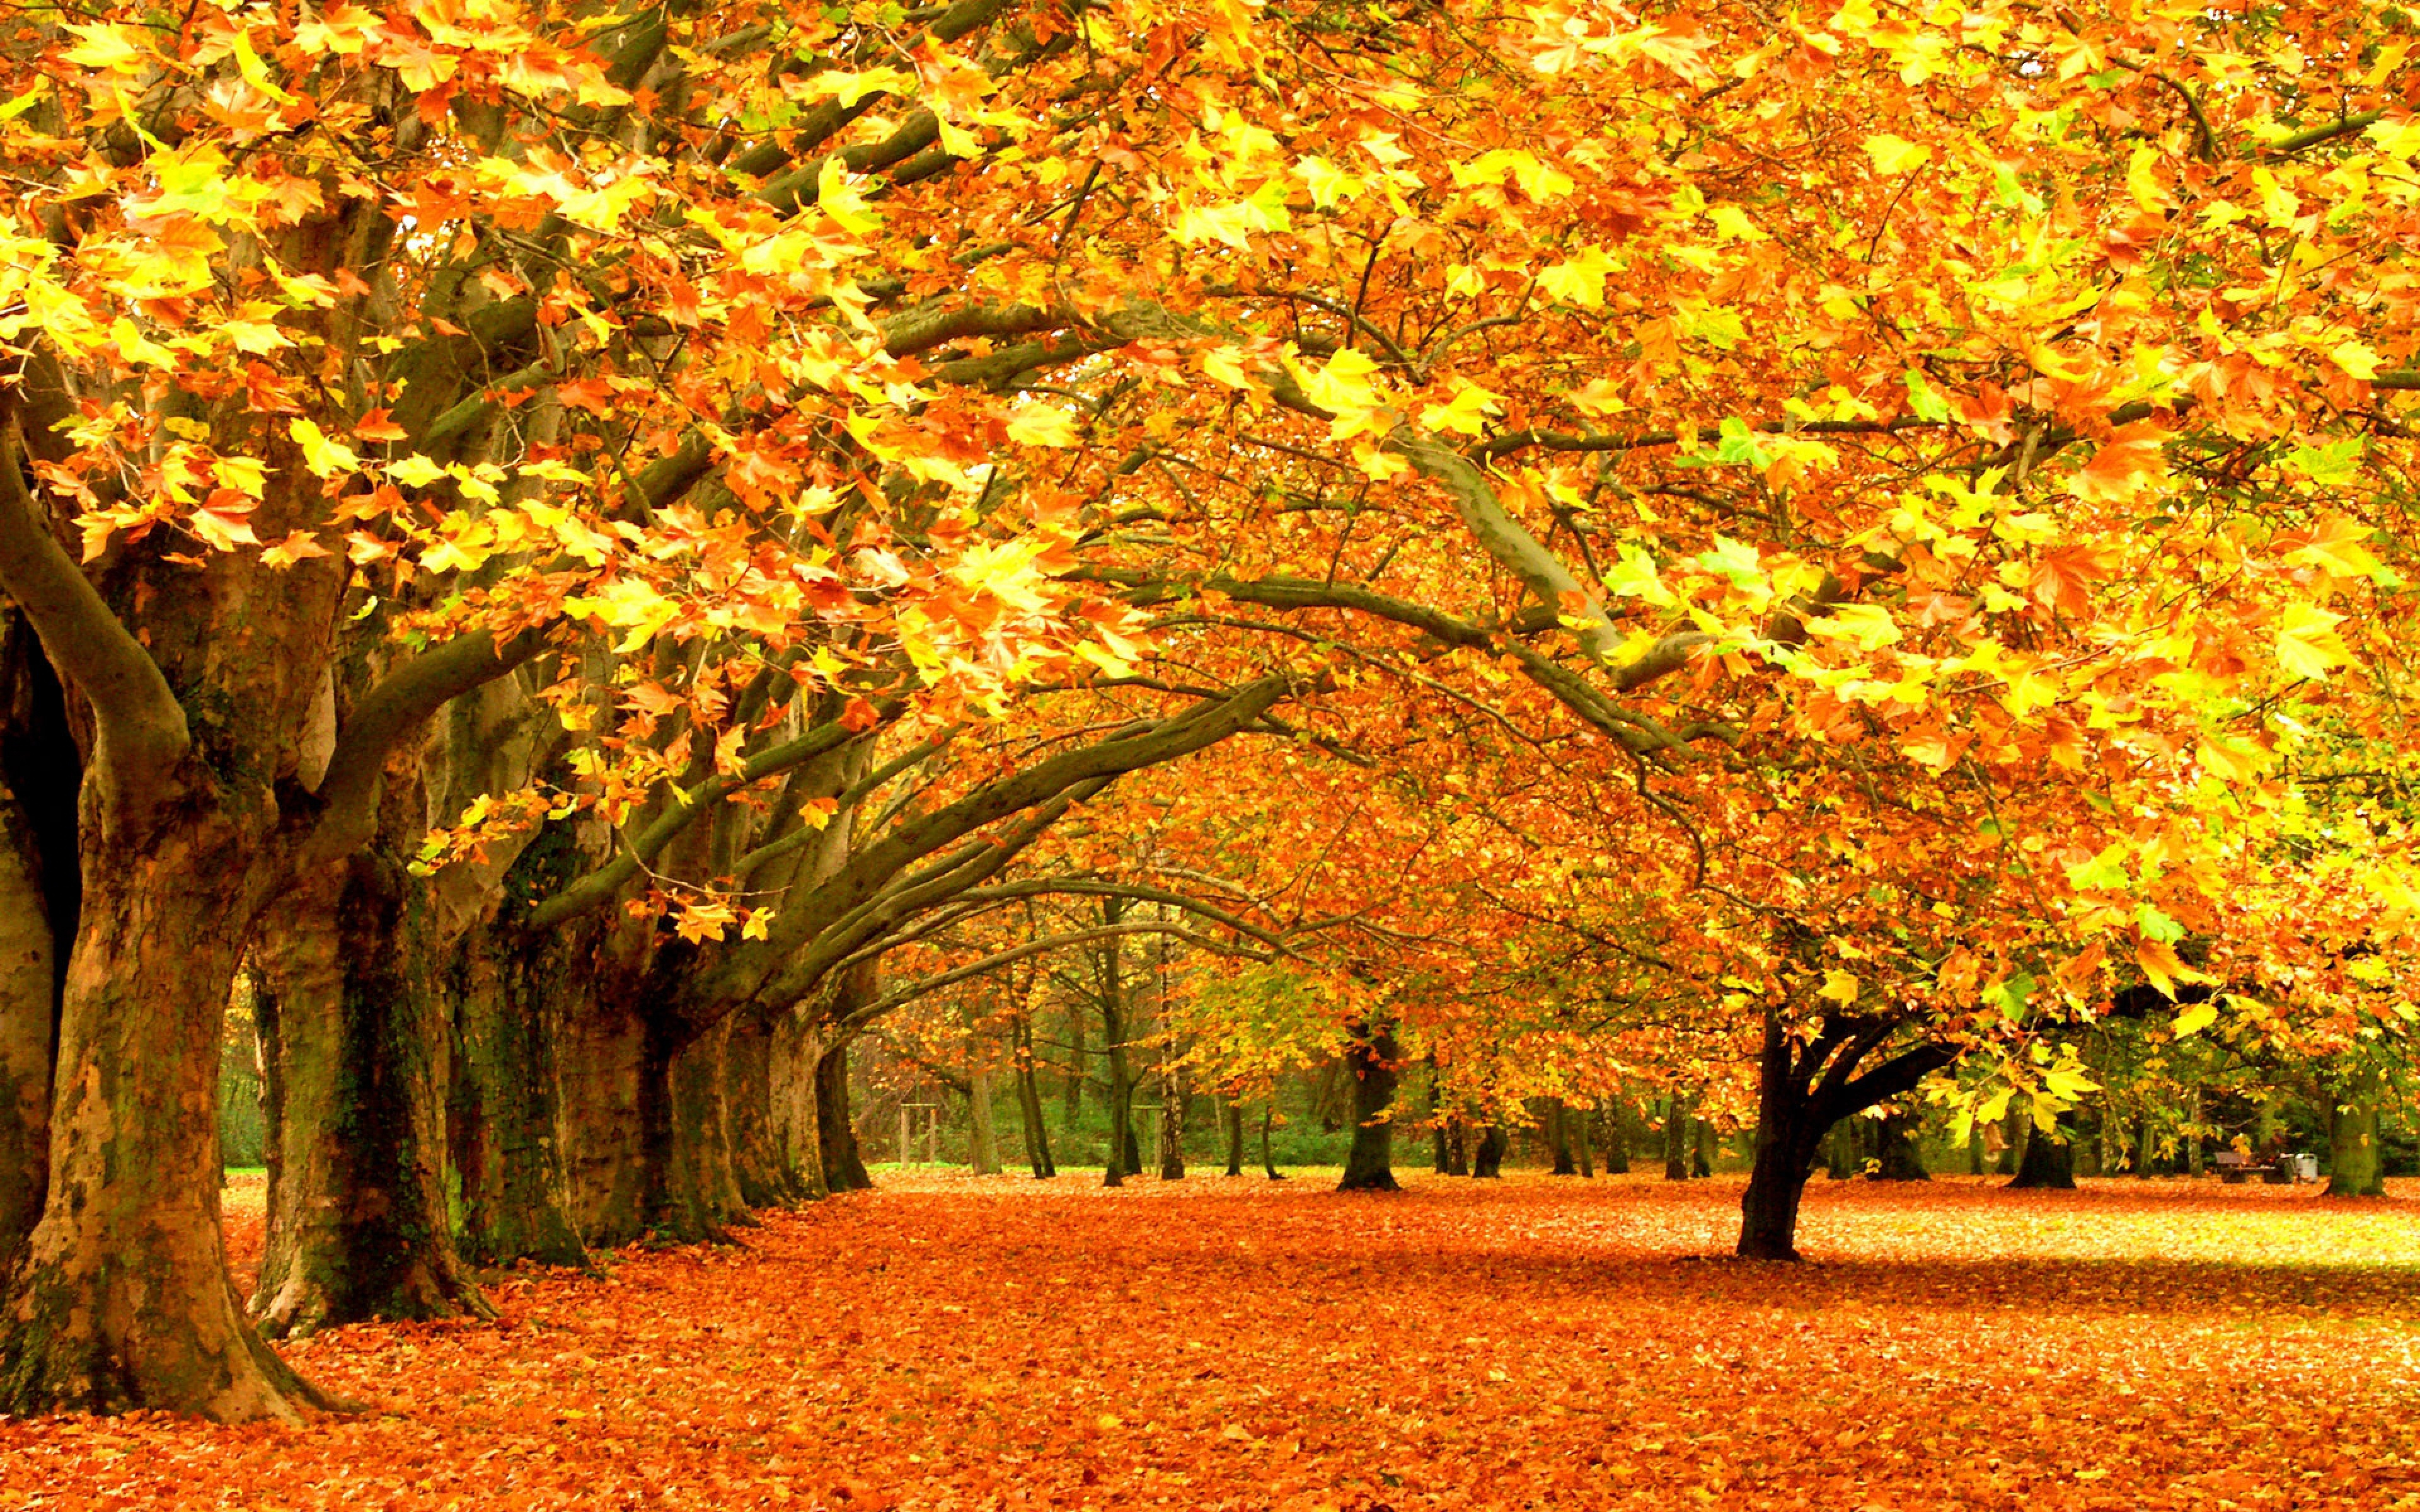 Autumn High Quality Wallpapers